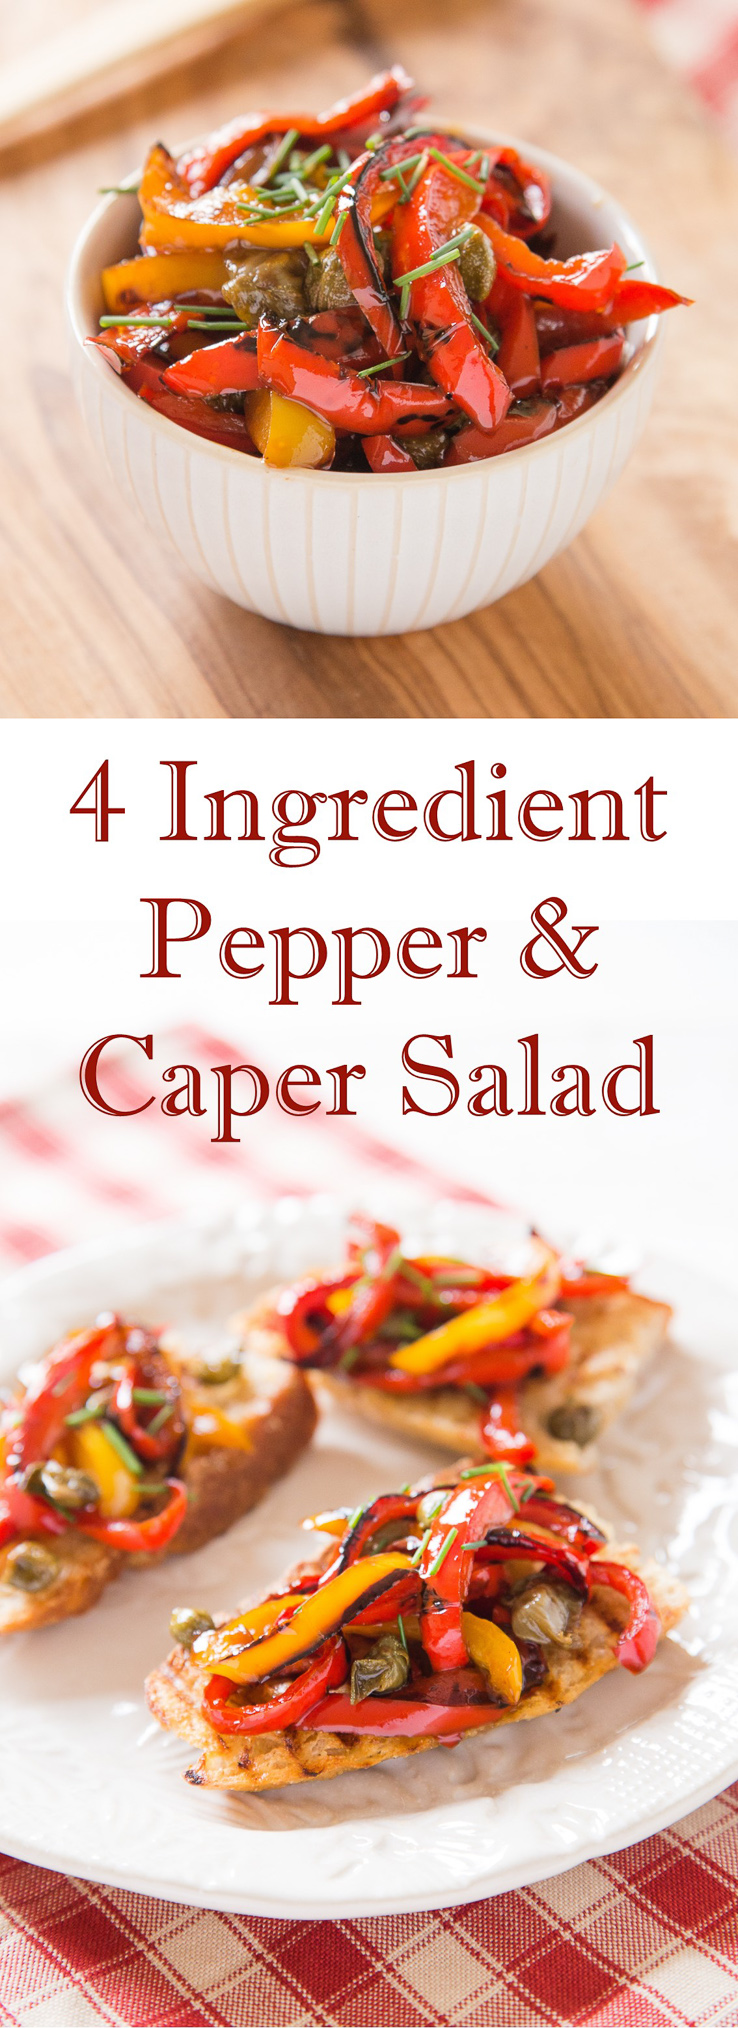 This 4 ingredient pepper and caper salad is delicious, easy to make and adaptable and makes a delicious bruschetta topping